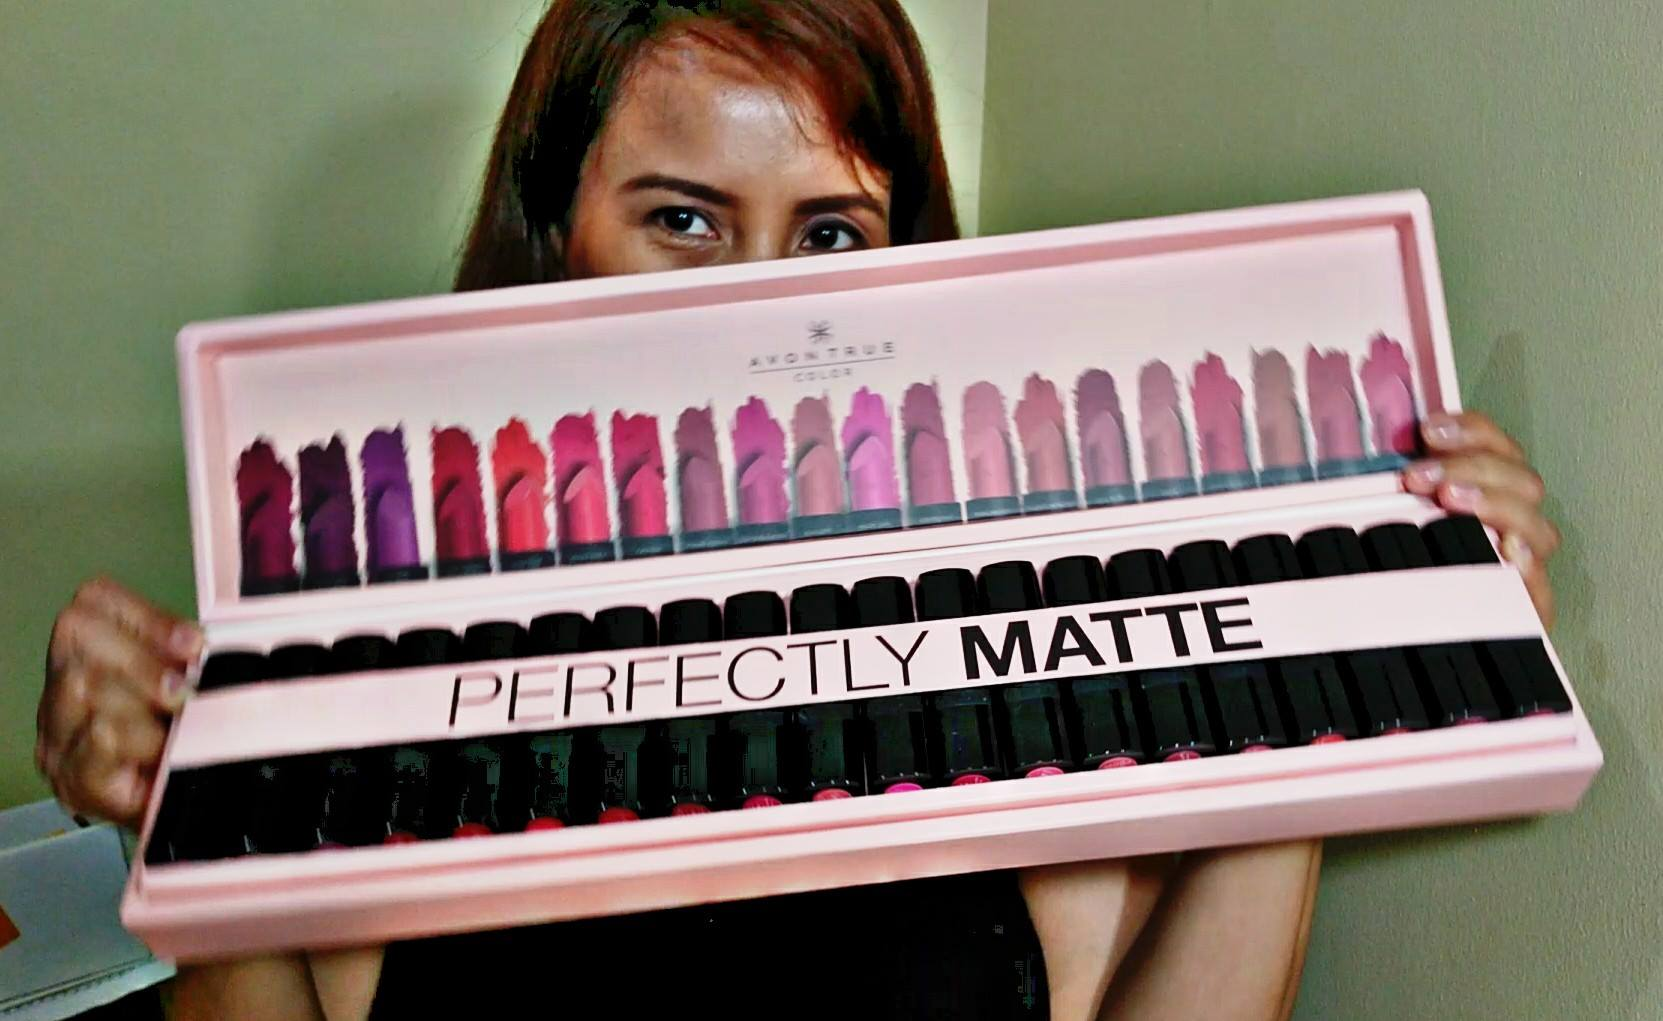 Swatch Party: Avon True Color Perfectly Matte Lipstick Shades Review + Marian Rivera-Dantes and Angel Locsin Lipstick Shade in the Avon TVC #PerfectlyMatte #AllforMatte